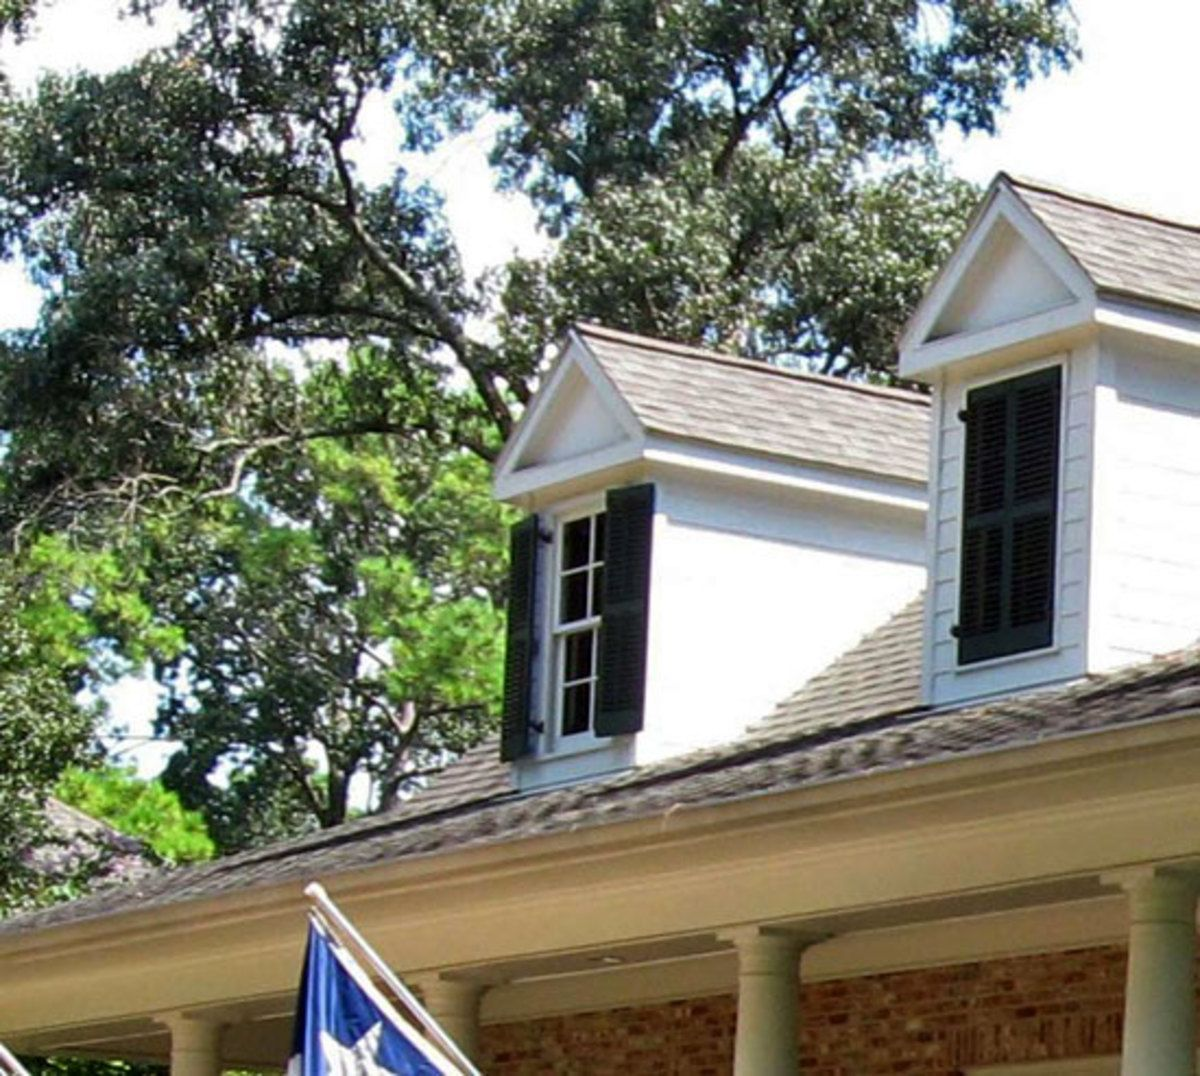 Window decorative shutters  shutters should be hung on the window in such a way that they can be